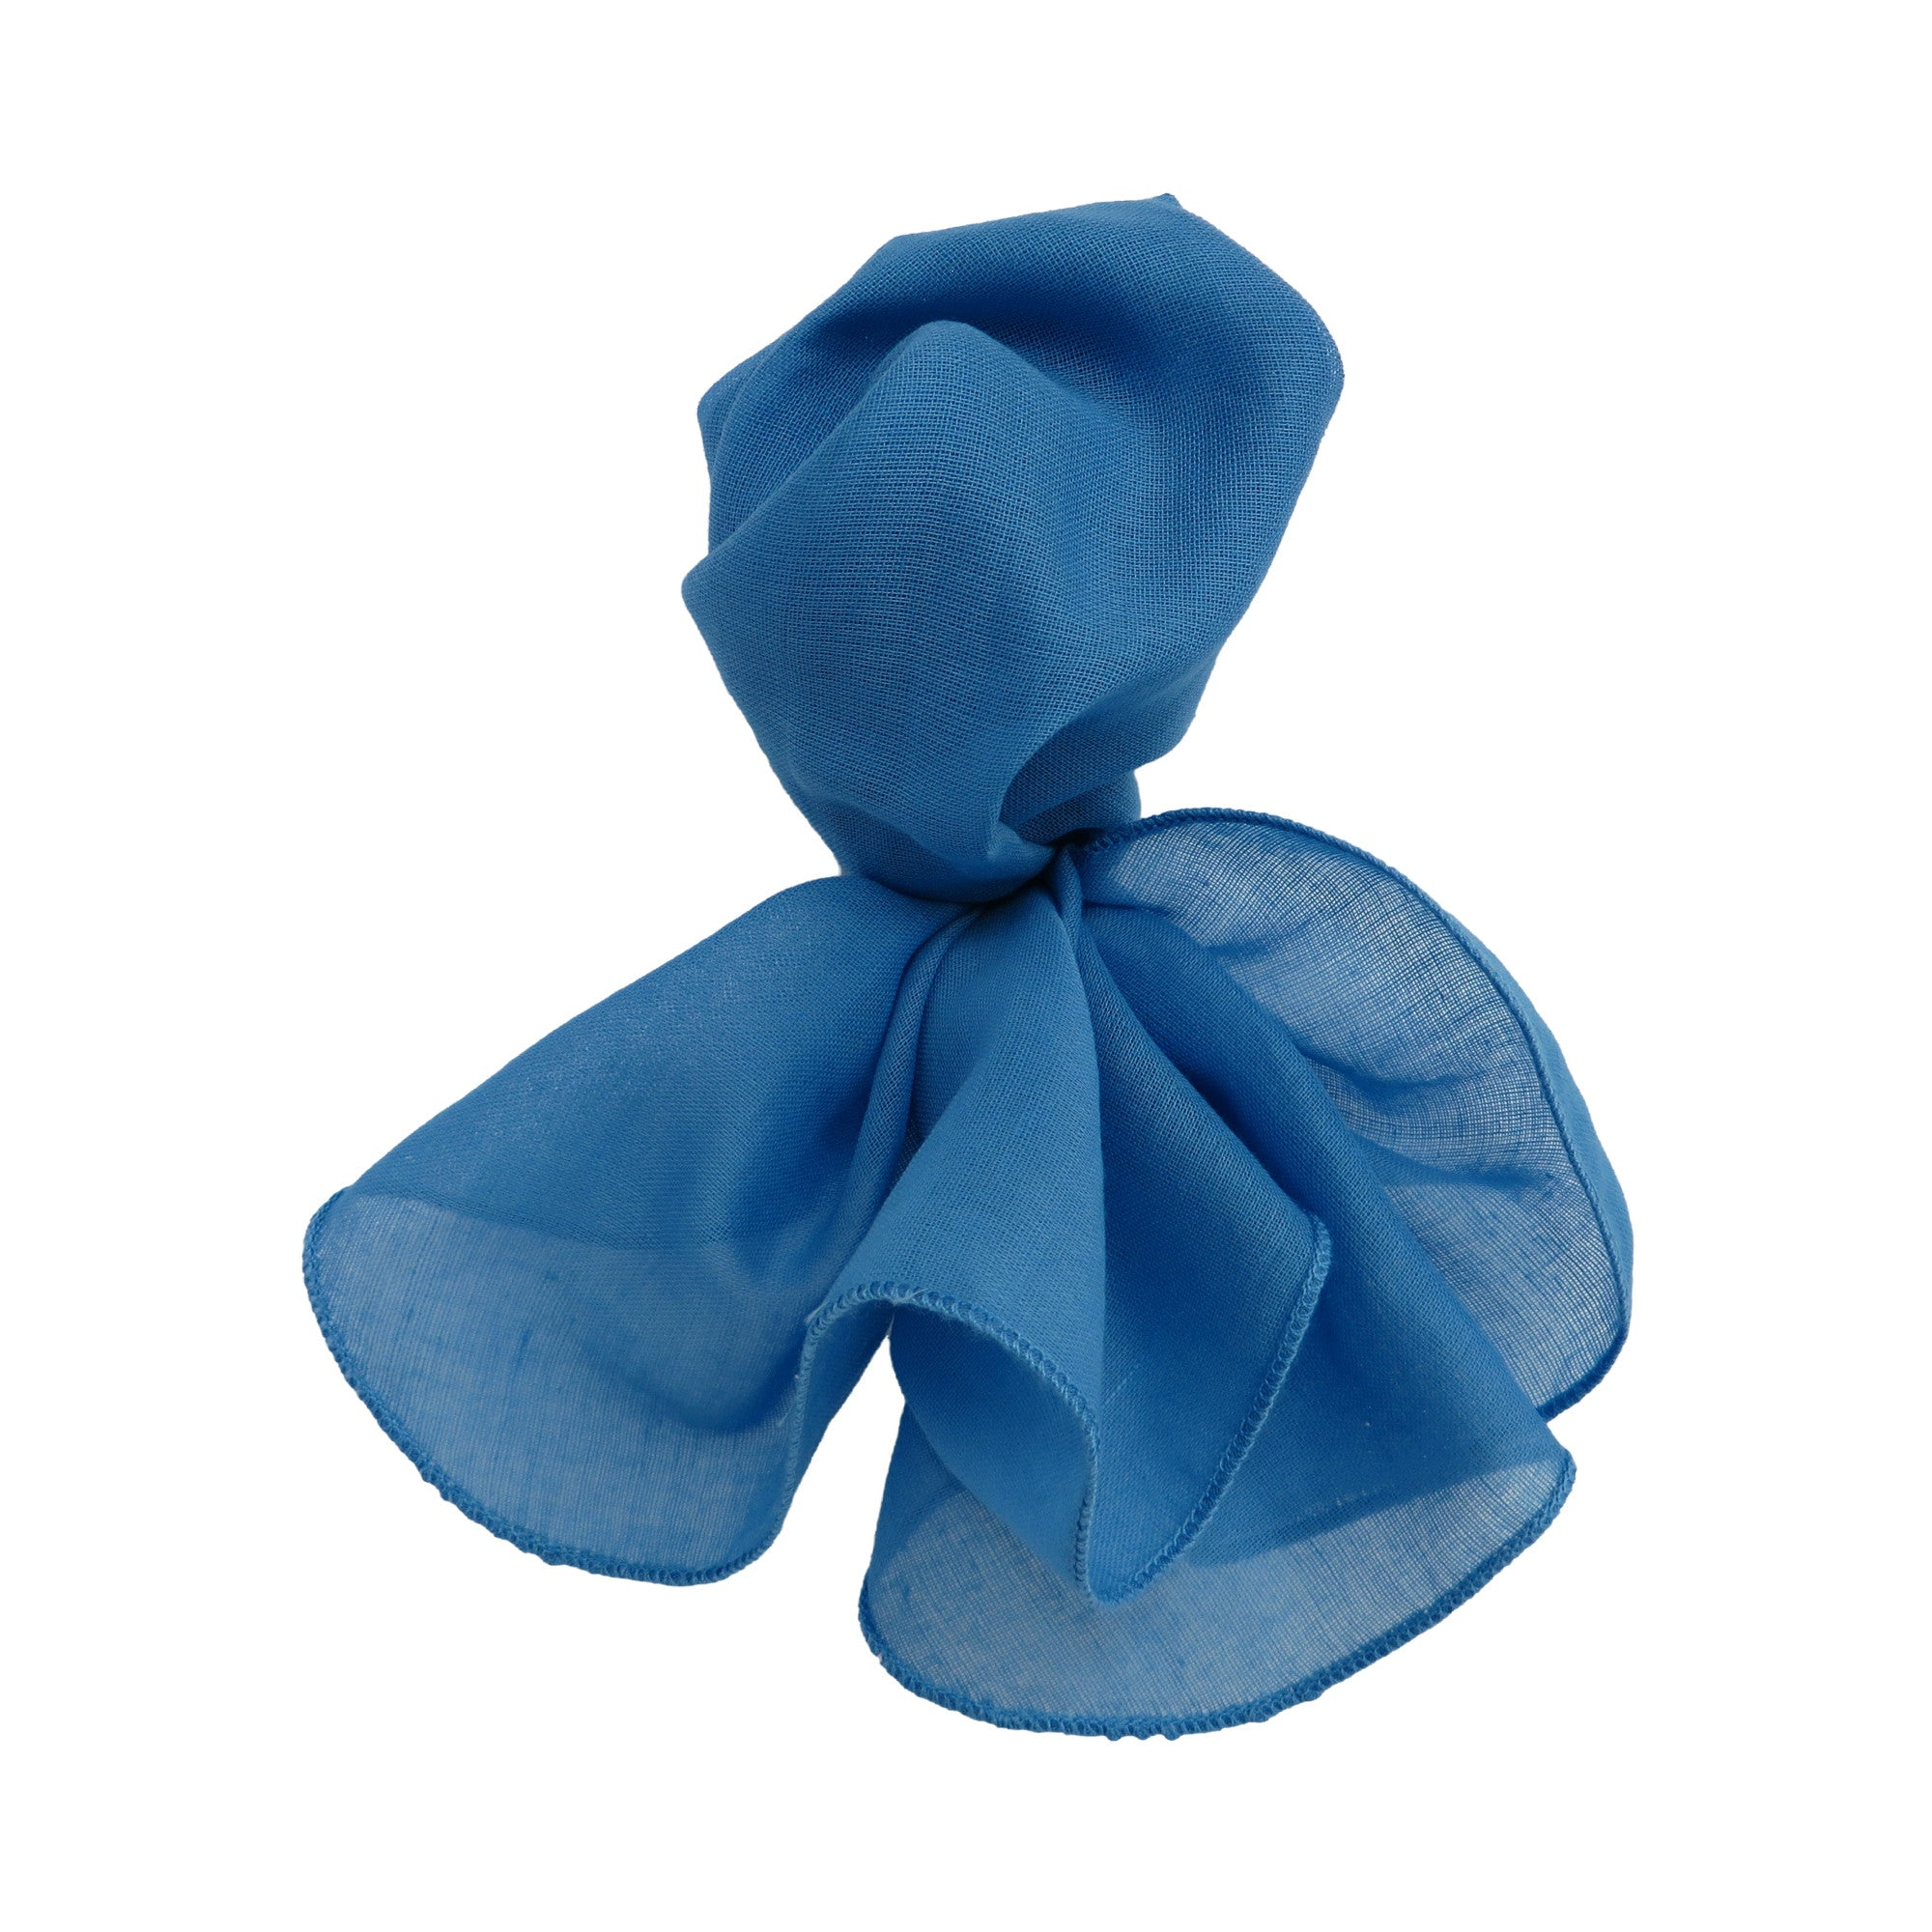 Cornflower Blue - Neck Scarf